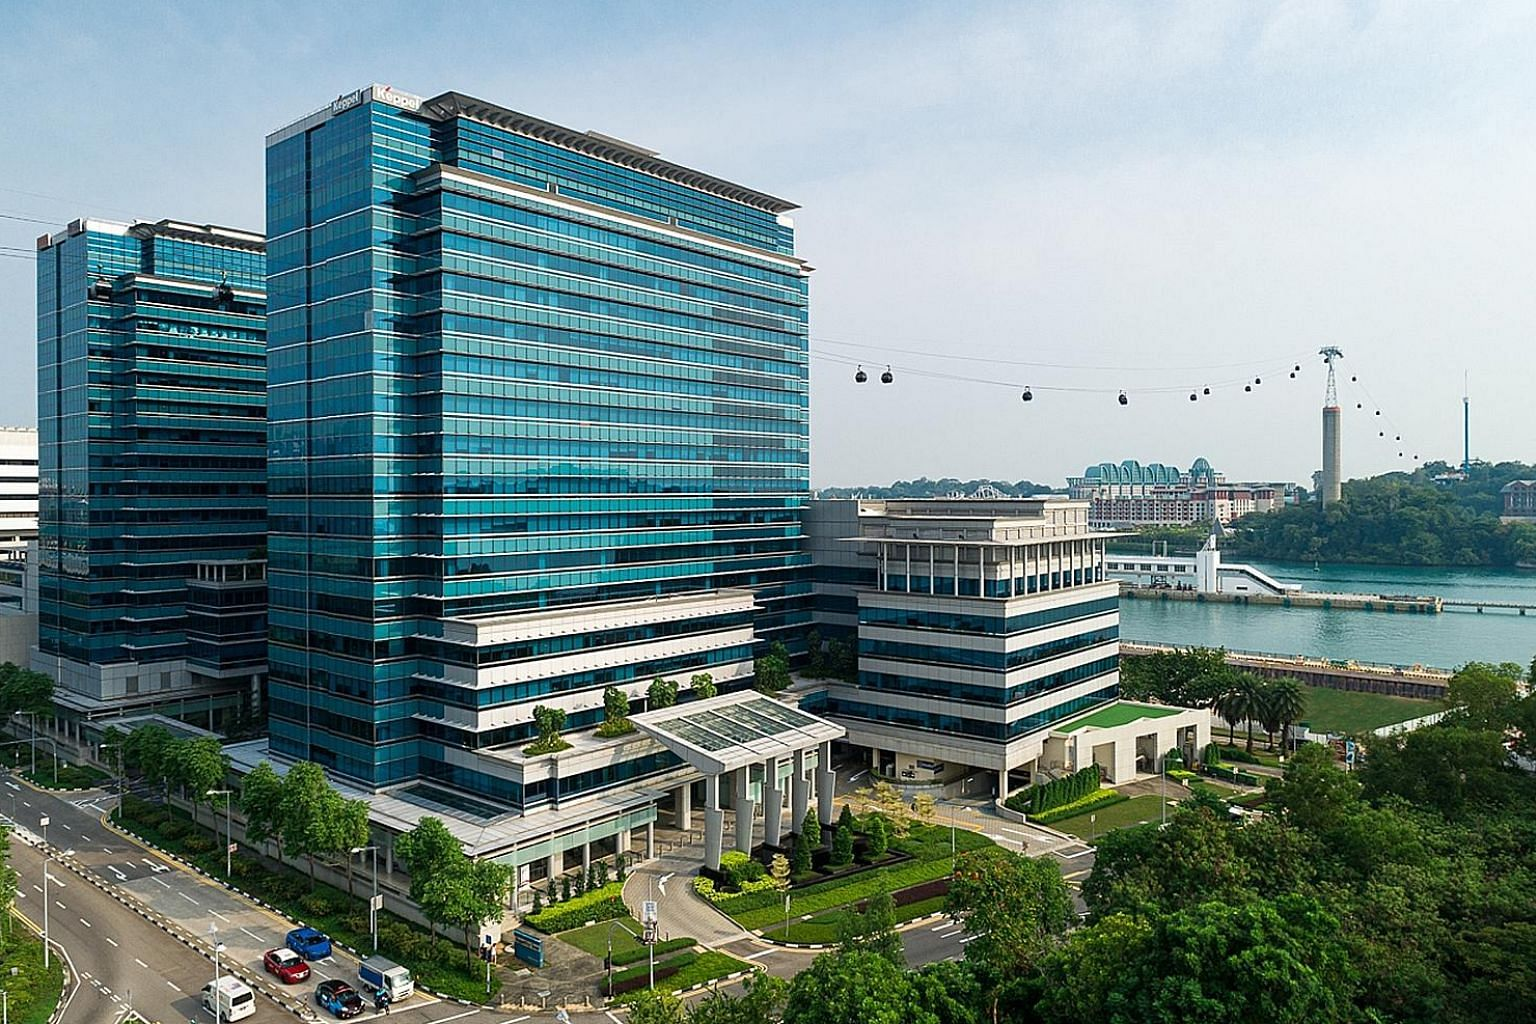 From Jan 1 next year, Keppel Bay Tower (left) will be Singapore's first commercial development to use renewable energy to power all its operations, including the offices of tenants in the building. This is part of Keppel's continued efforts to transf